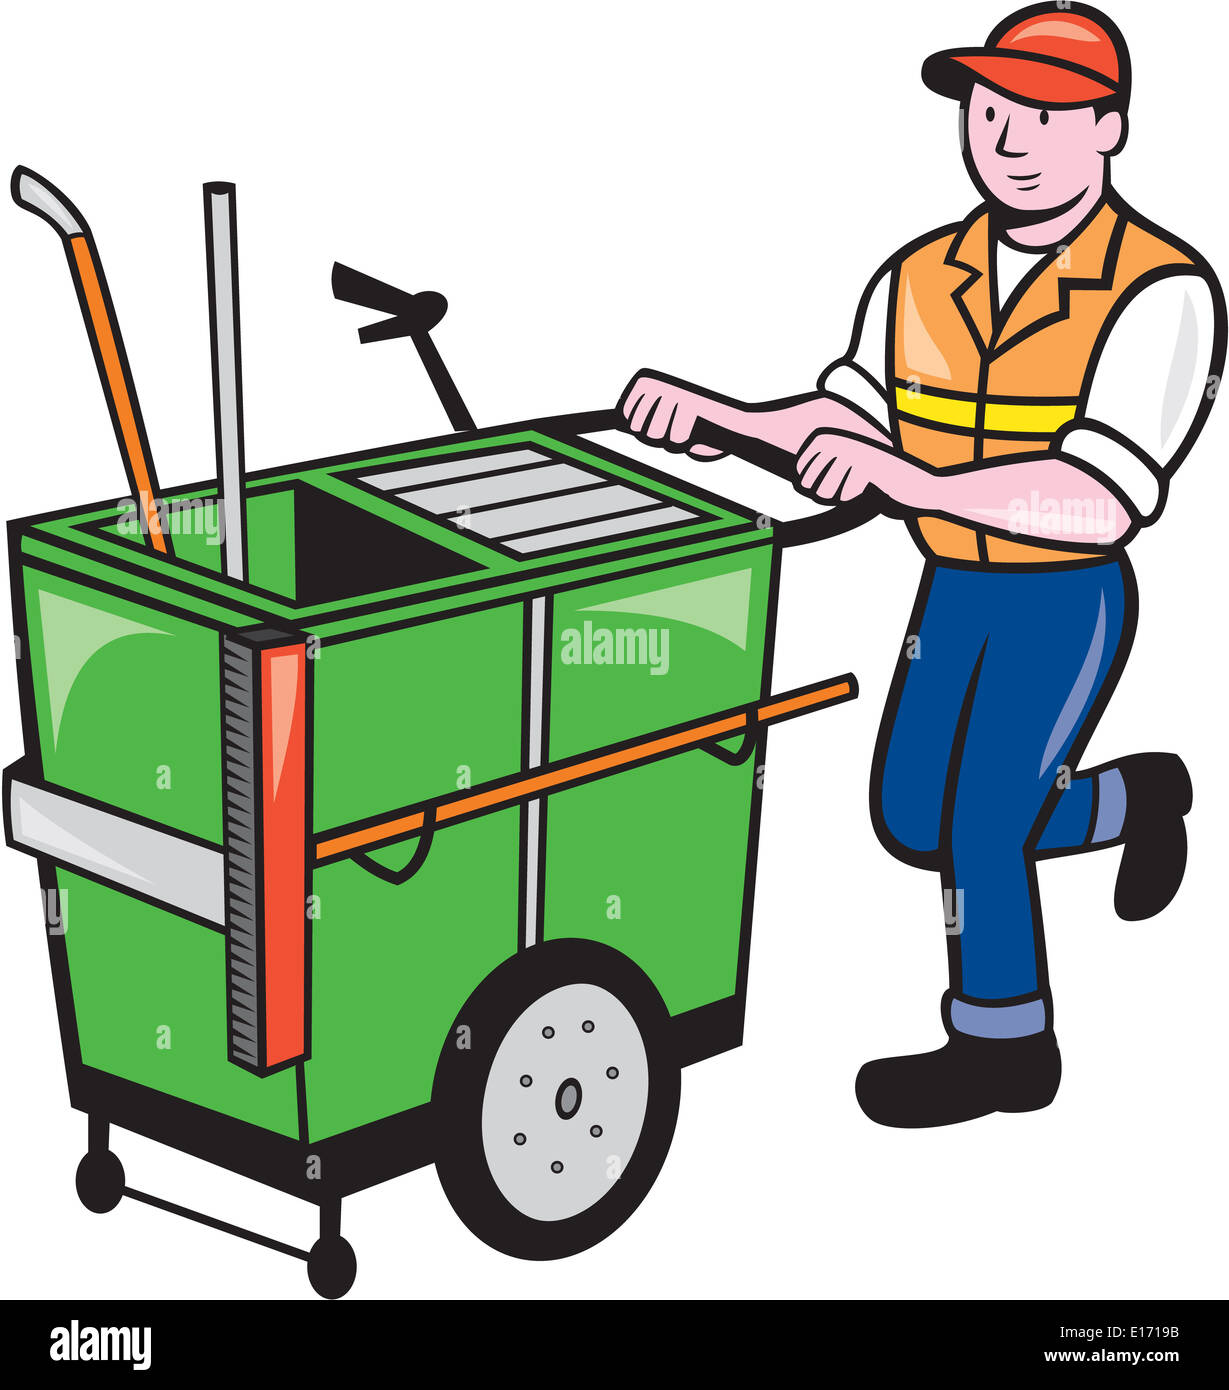 Illustration of a street cleaner worker pushing a cleaning trolley viewed from front on isolated background done Stock Photo